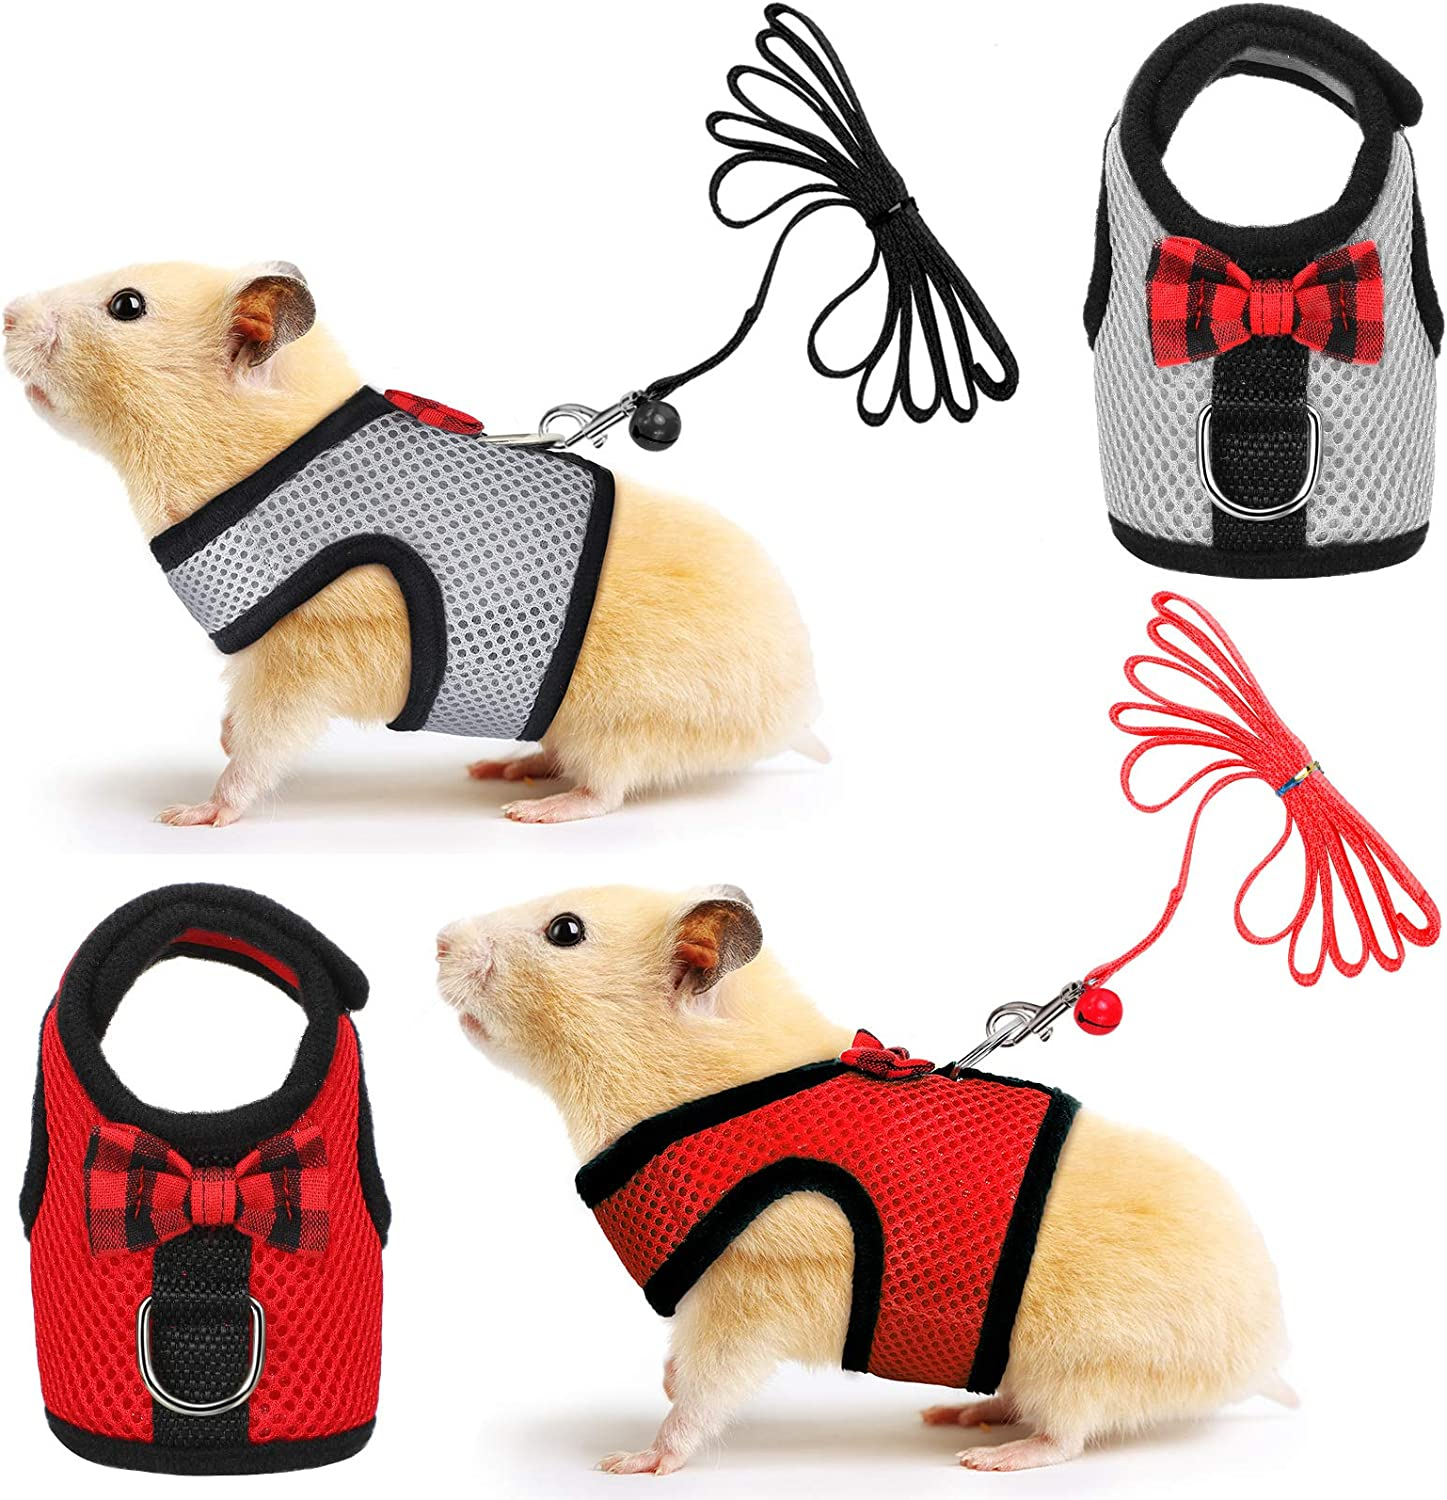 SATINIOR 2 Pieces Guinea Pig Harness Small Under blast sales and Soft Leash P Mesh Outstanding